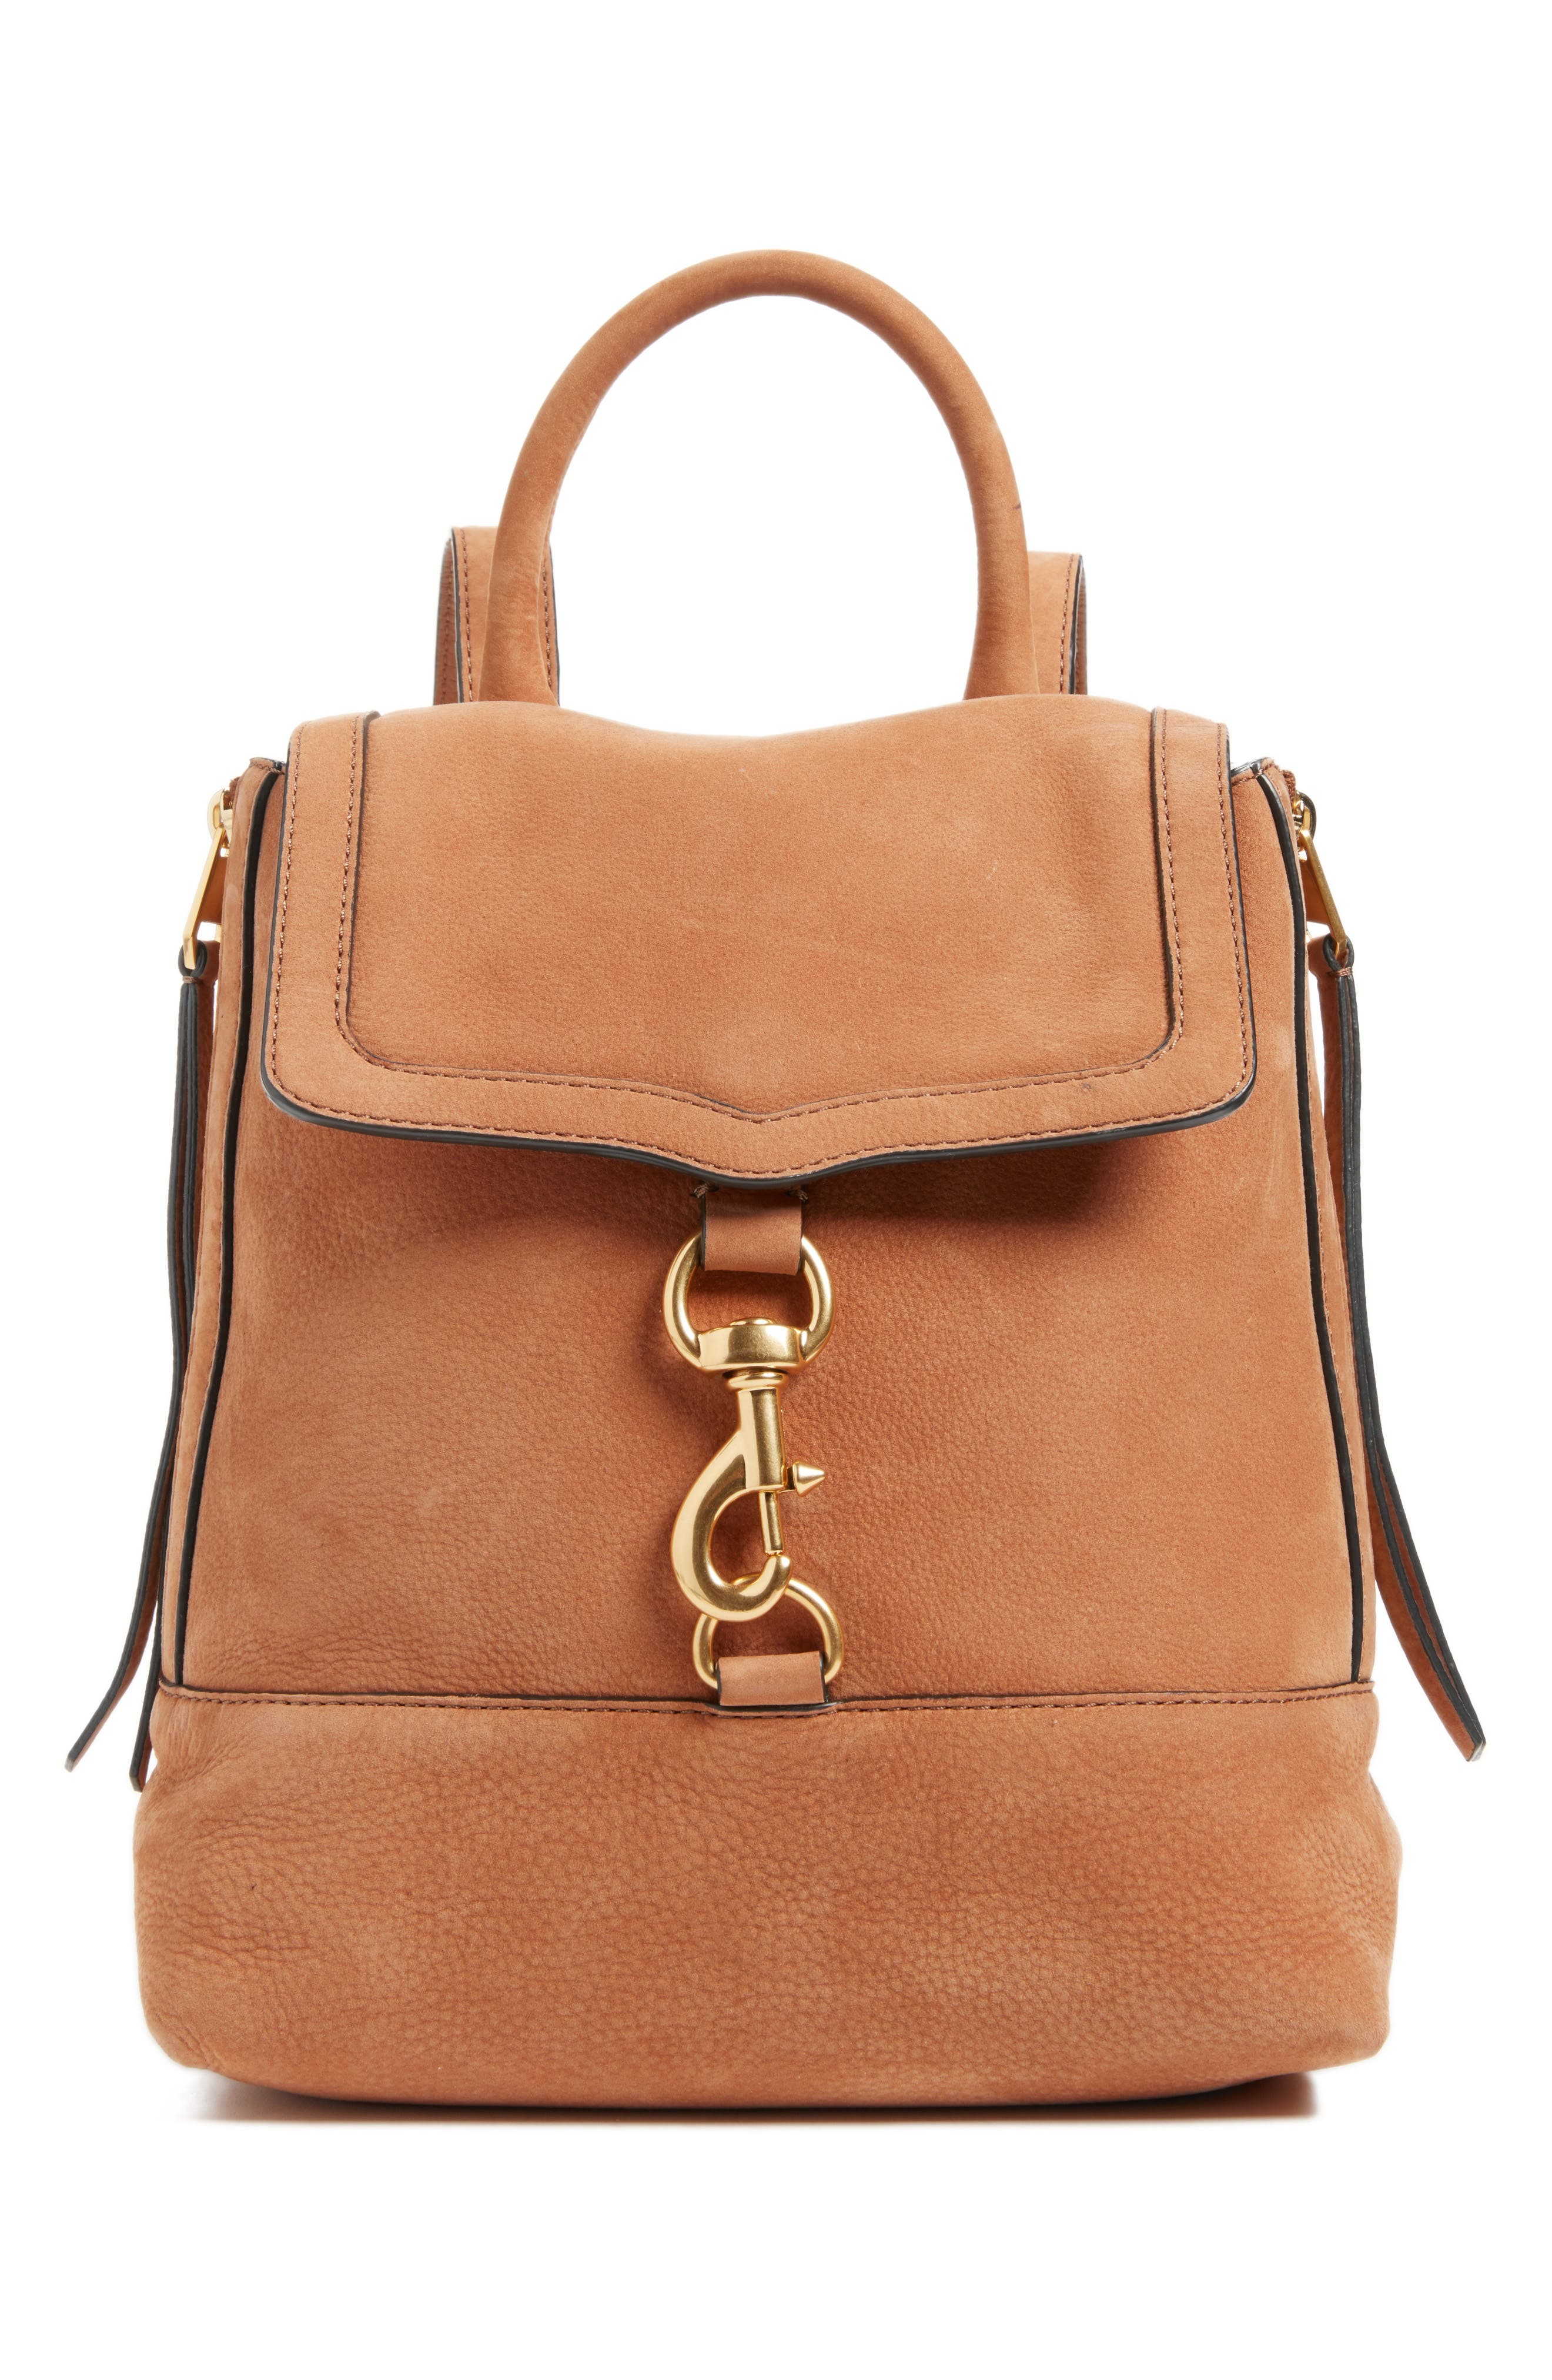 Rebecca Minkoff Bree Leather Convertible Backpack